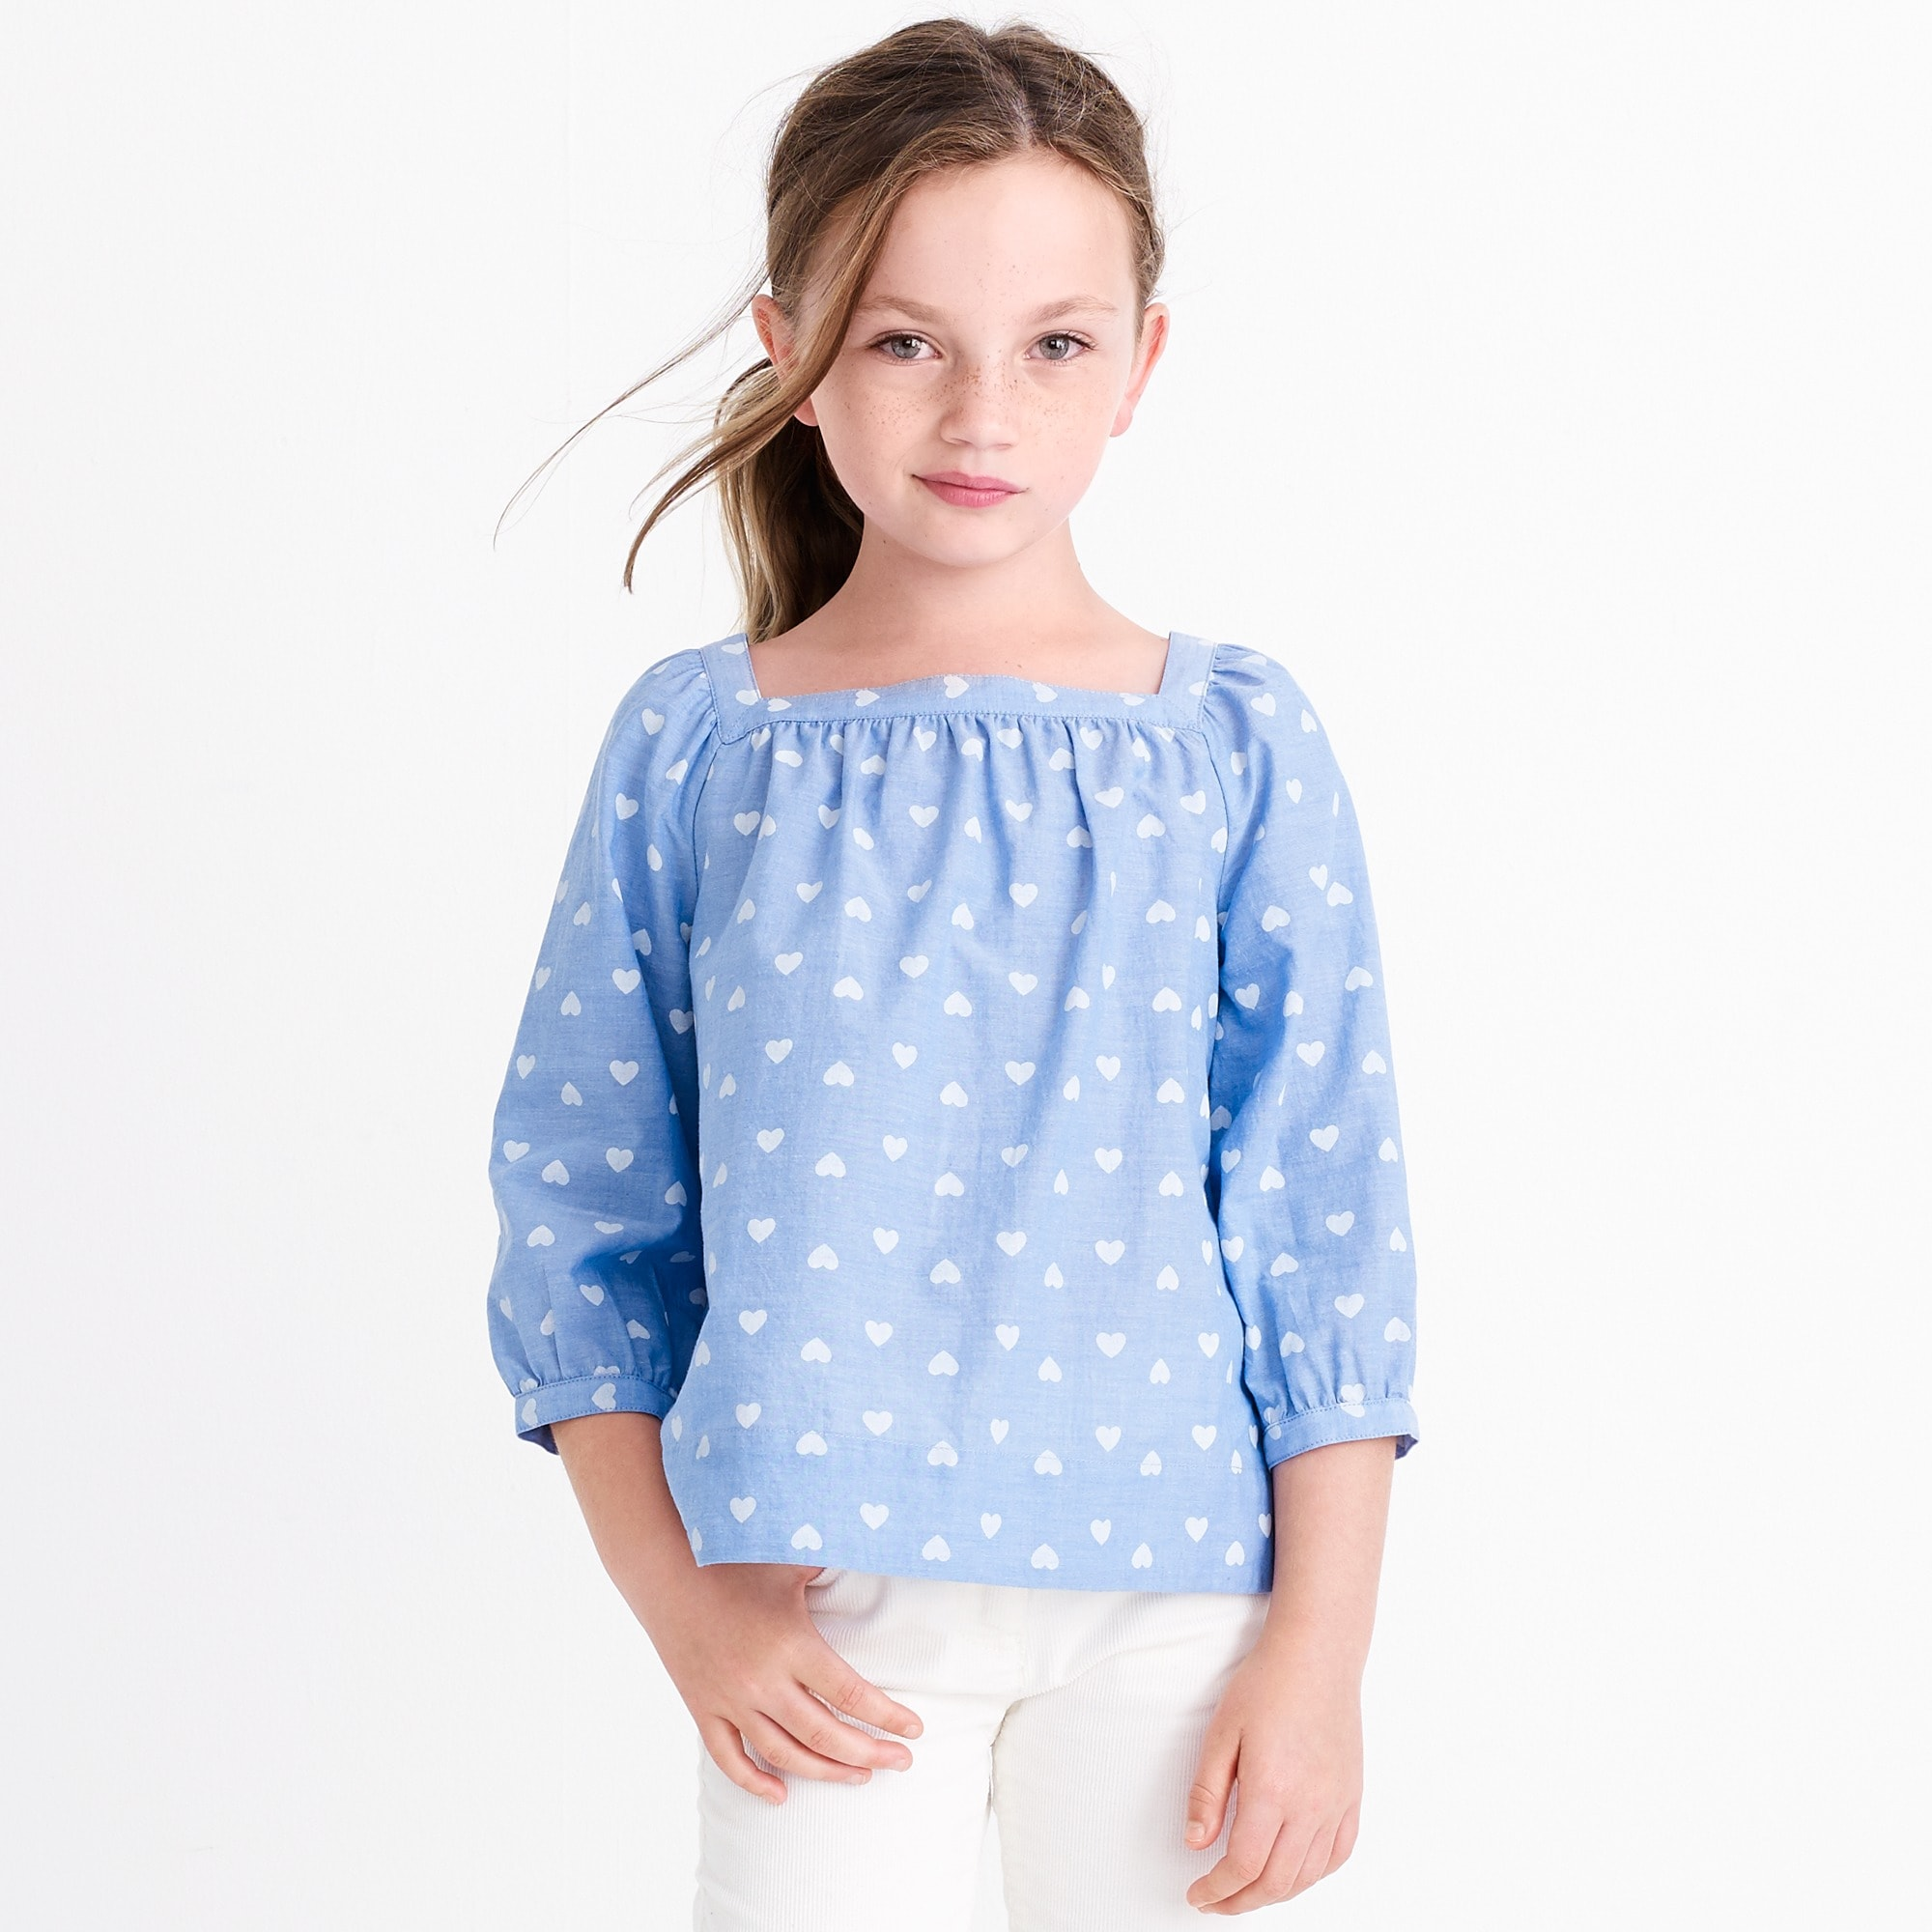 girls' heart-print peasant top : girl novelty shirts